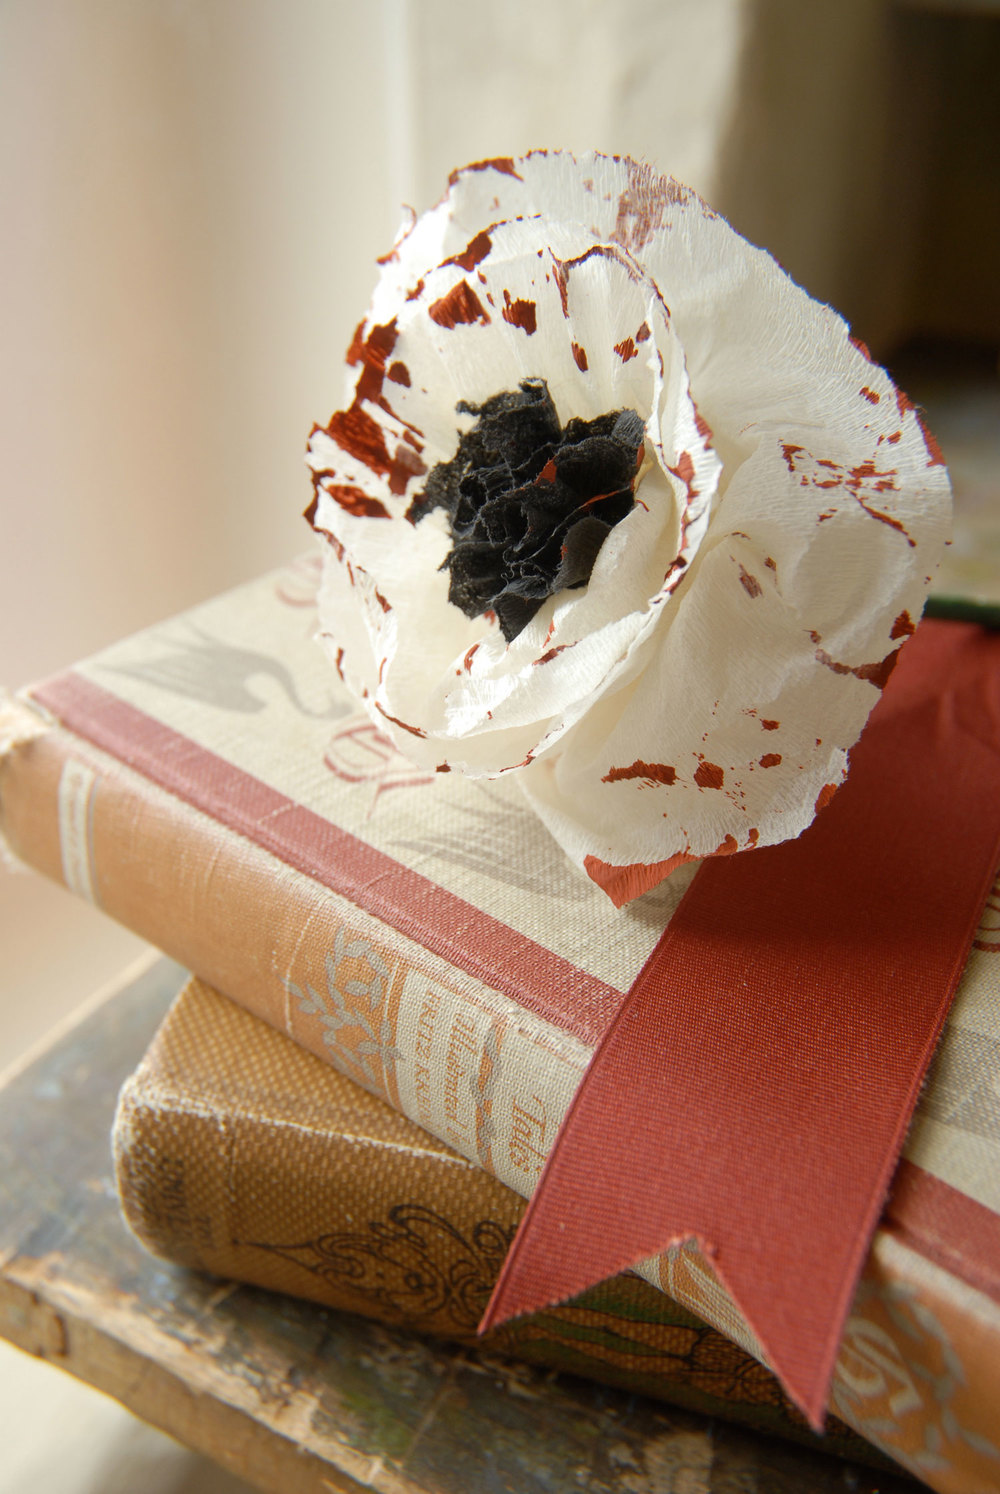 9781454702474_a180-flower-on-book-OP.jpg